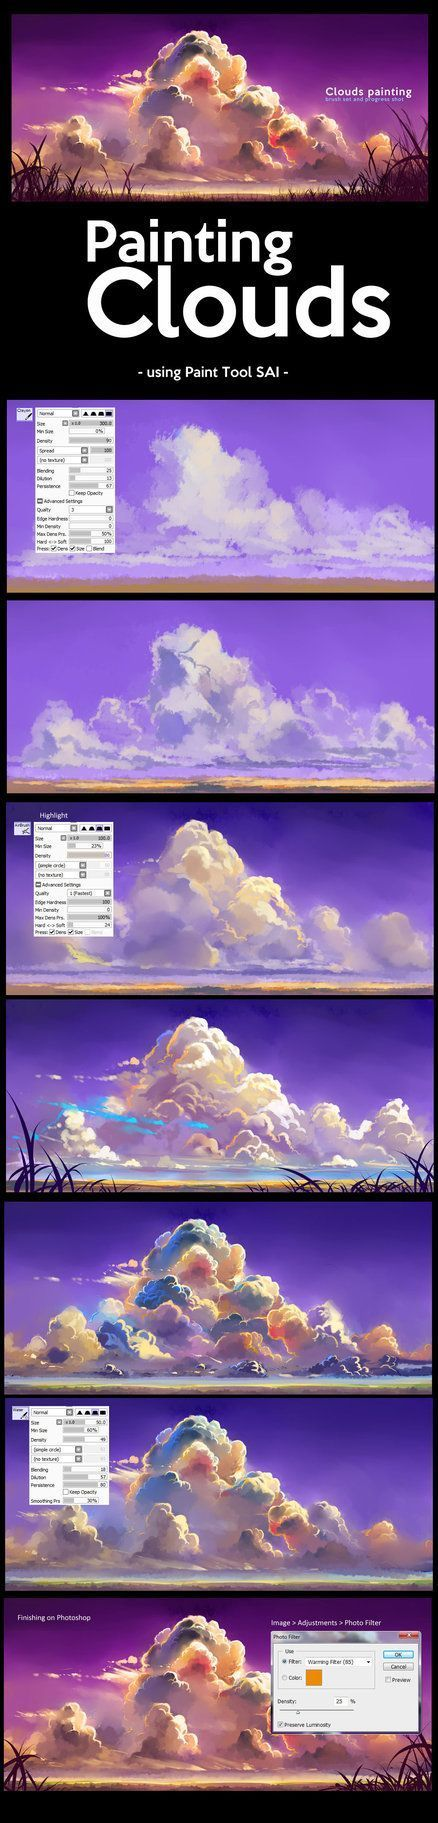 Painting Clouds in Paint Tool SAI by ombobon.deviantart.com on @DeviantArt: